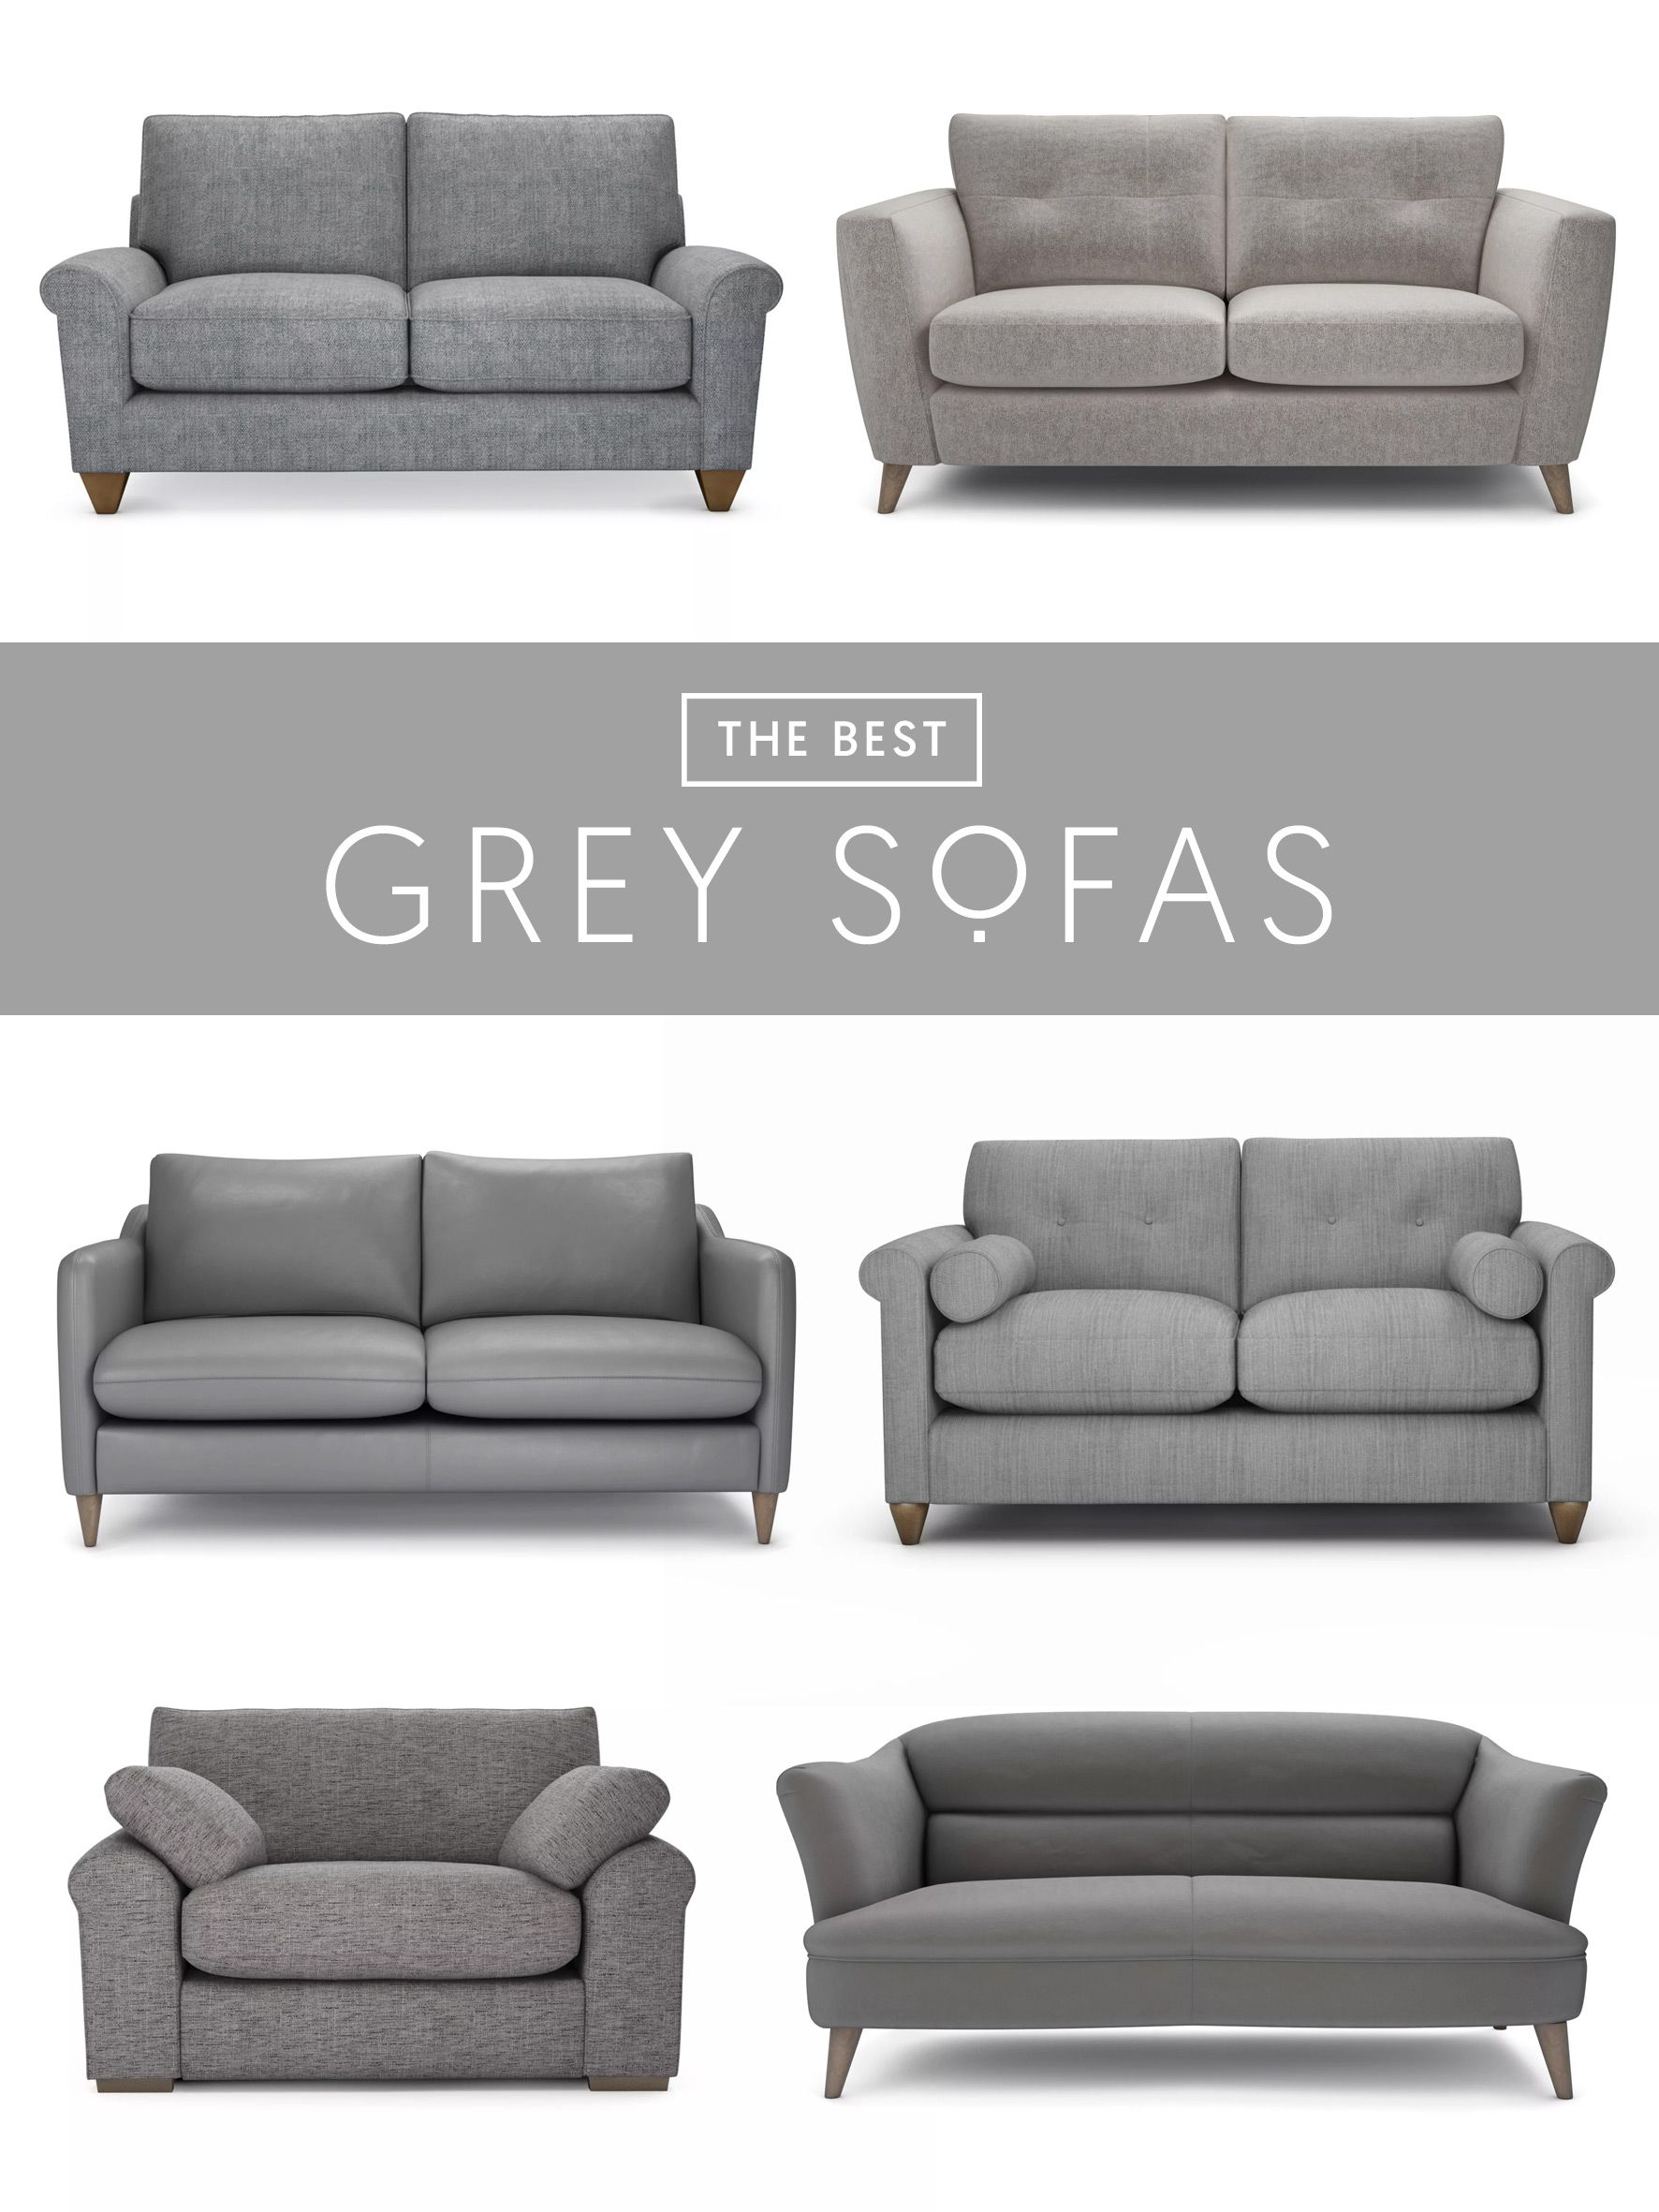 Exceptionnel The Best 6 Grey Sofas | If You Love Grey, Youu0027ll Find A Stunning Selection  Of Velvet, Fabric, Tweed And Leather At The Lounge Co.